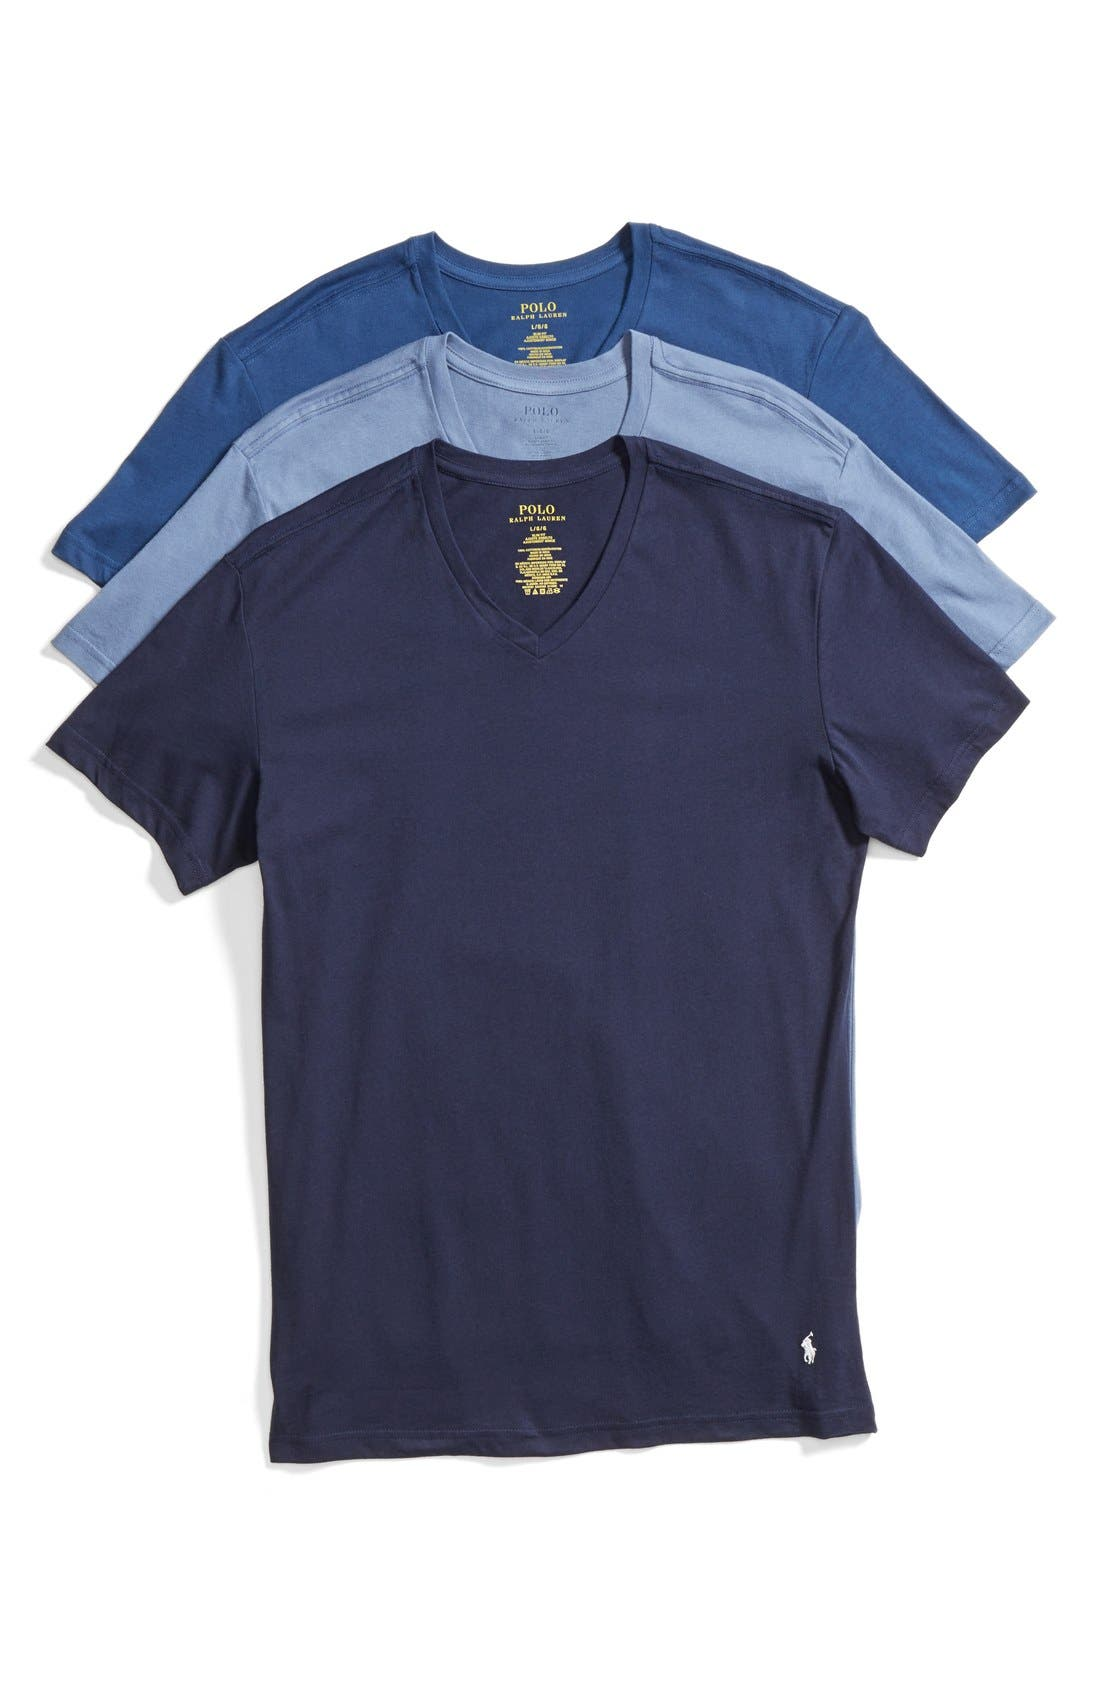 POLO RALPH LAUREN 3-Pack Trim Fit T-Shirt